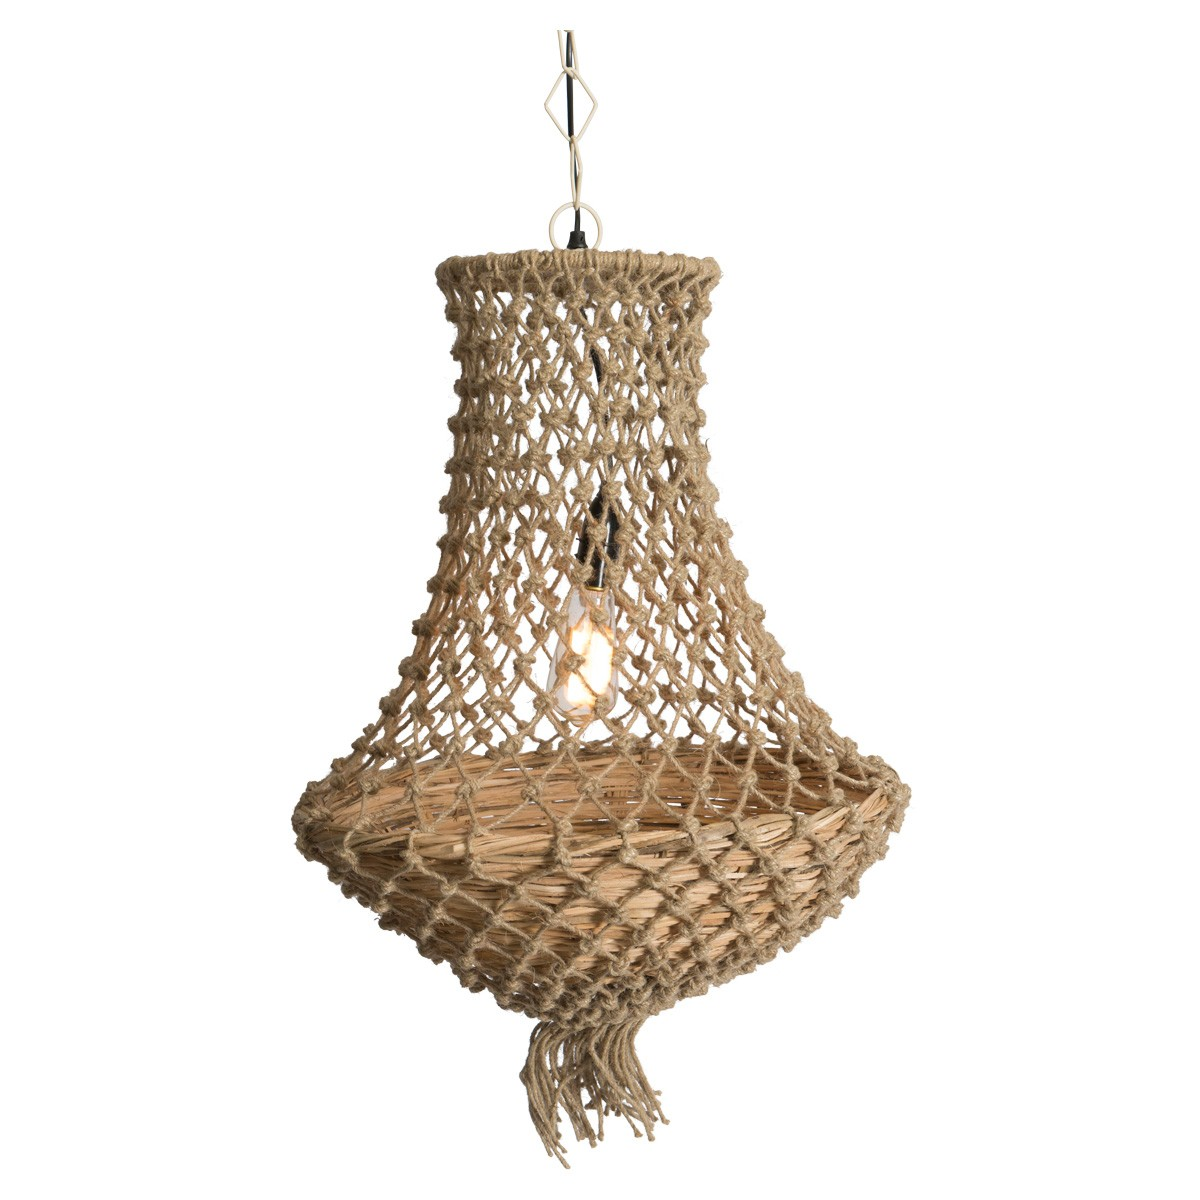 Chatou Knotted Jute Pendant Light